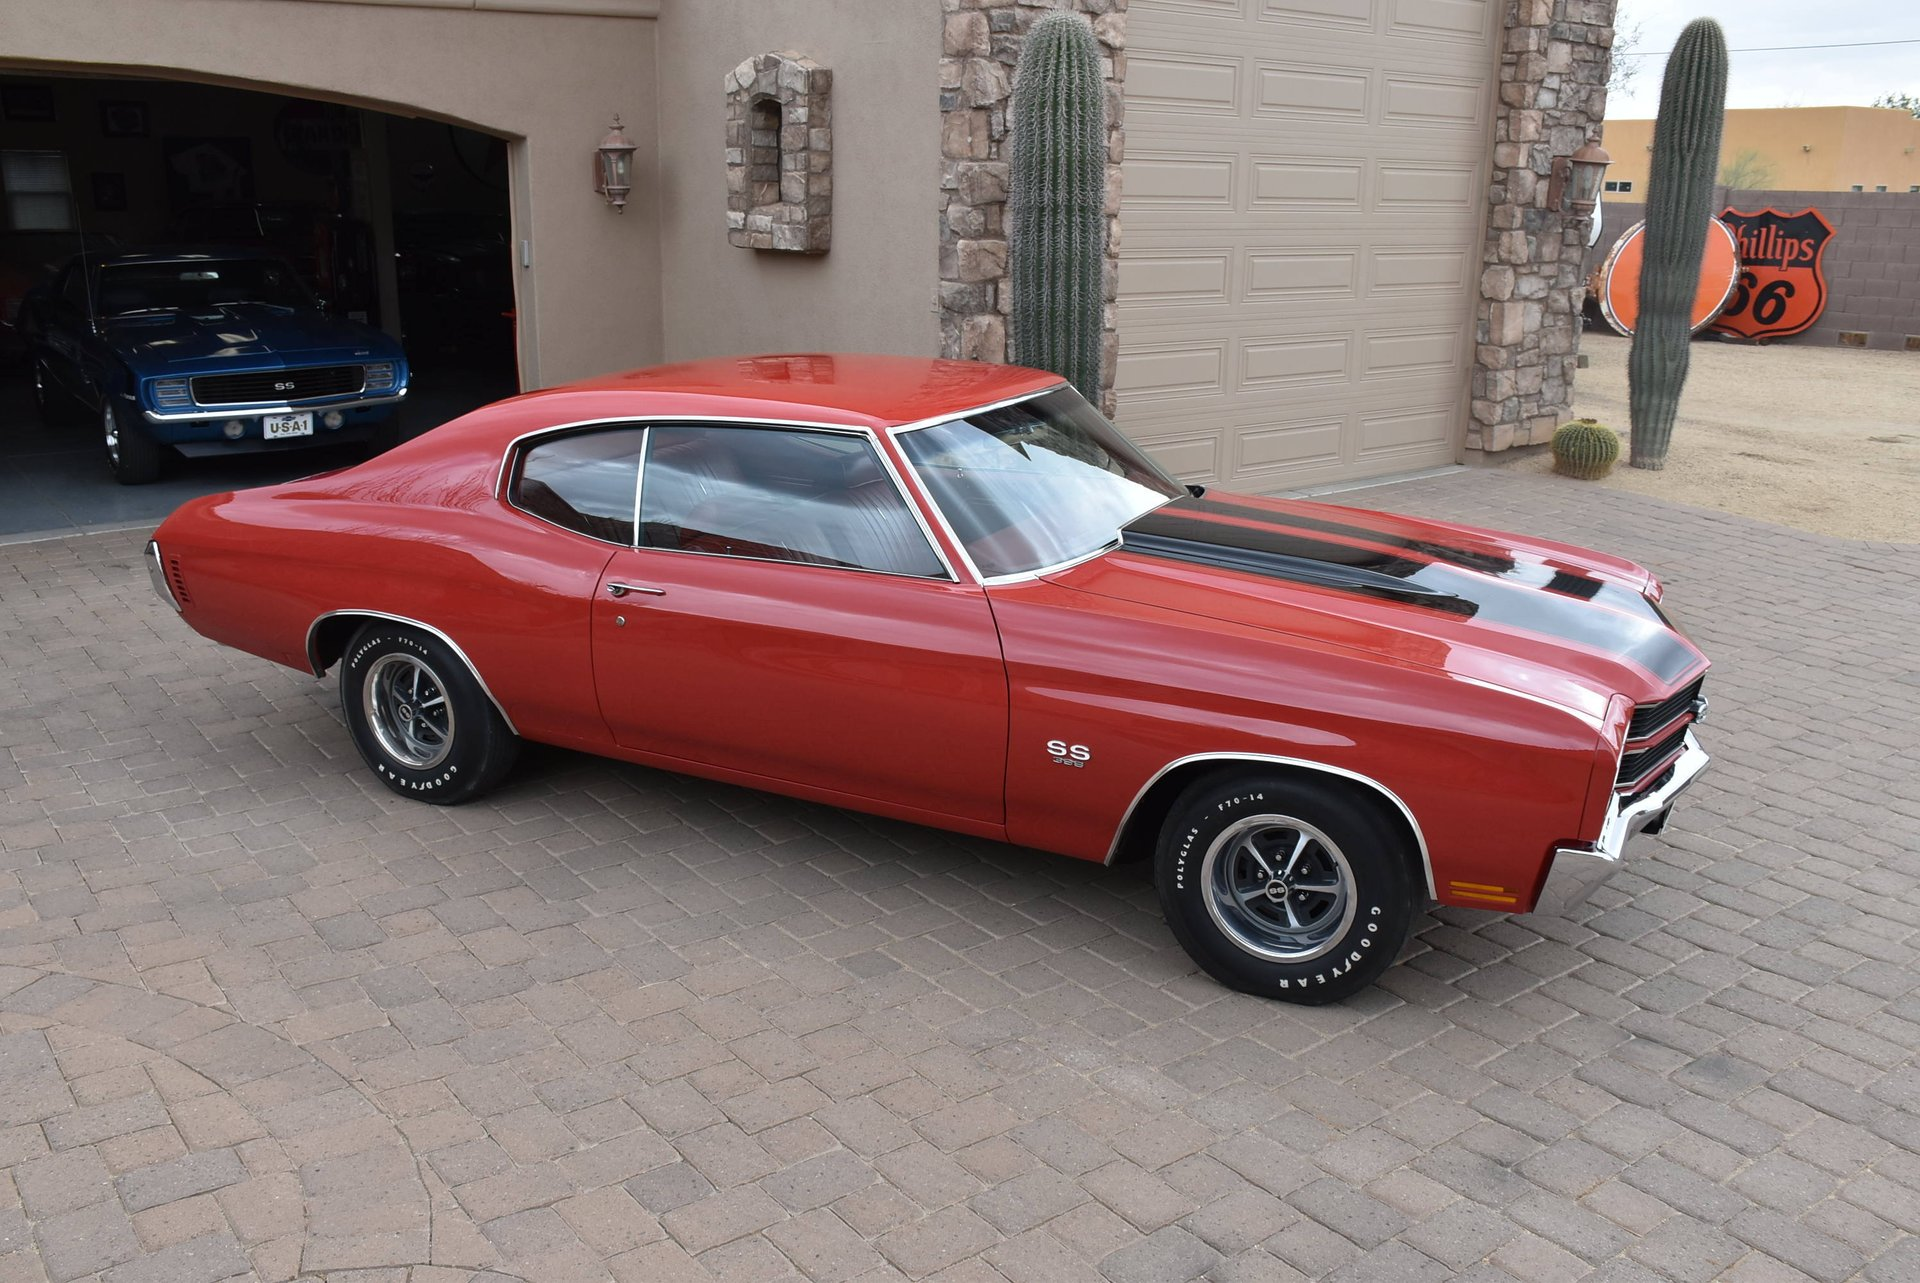 1970 chevrolet chevelle ss396 4 speed w 454 450hp red on red